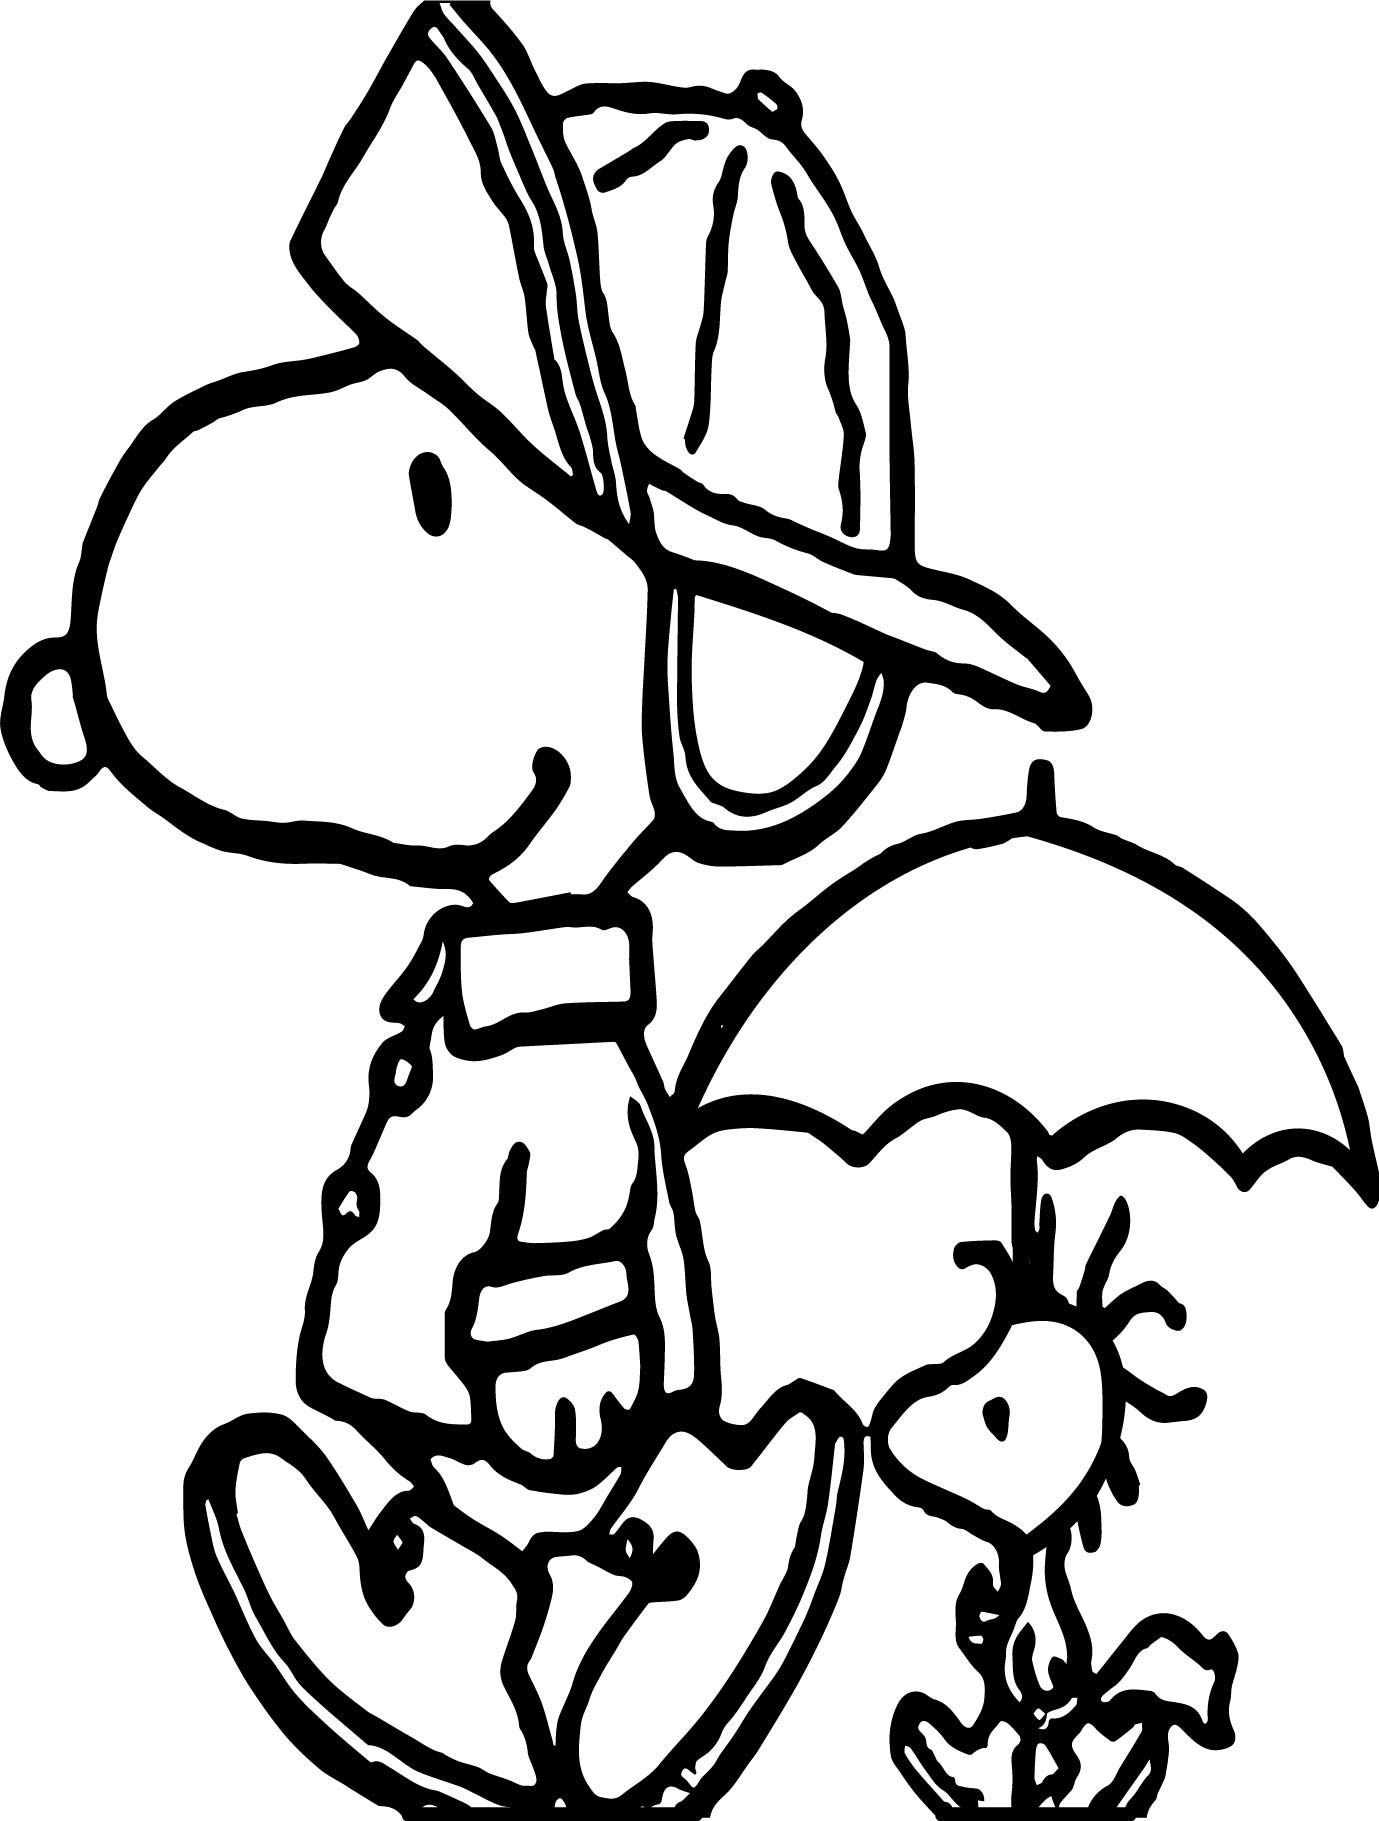 april showers coloring pages - april shower snoopy coloring page